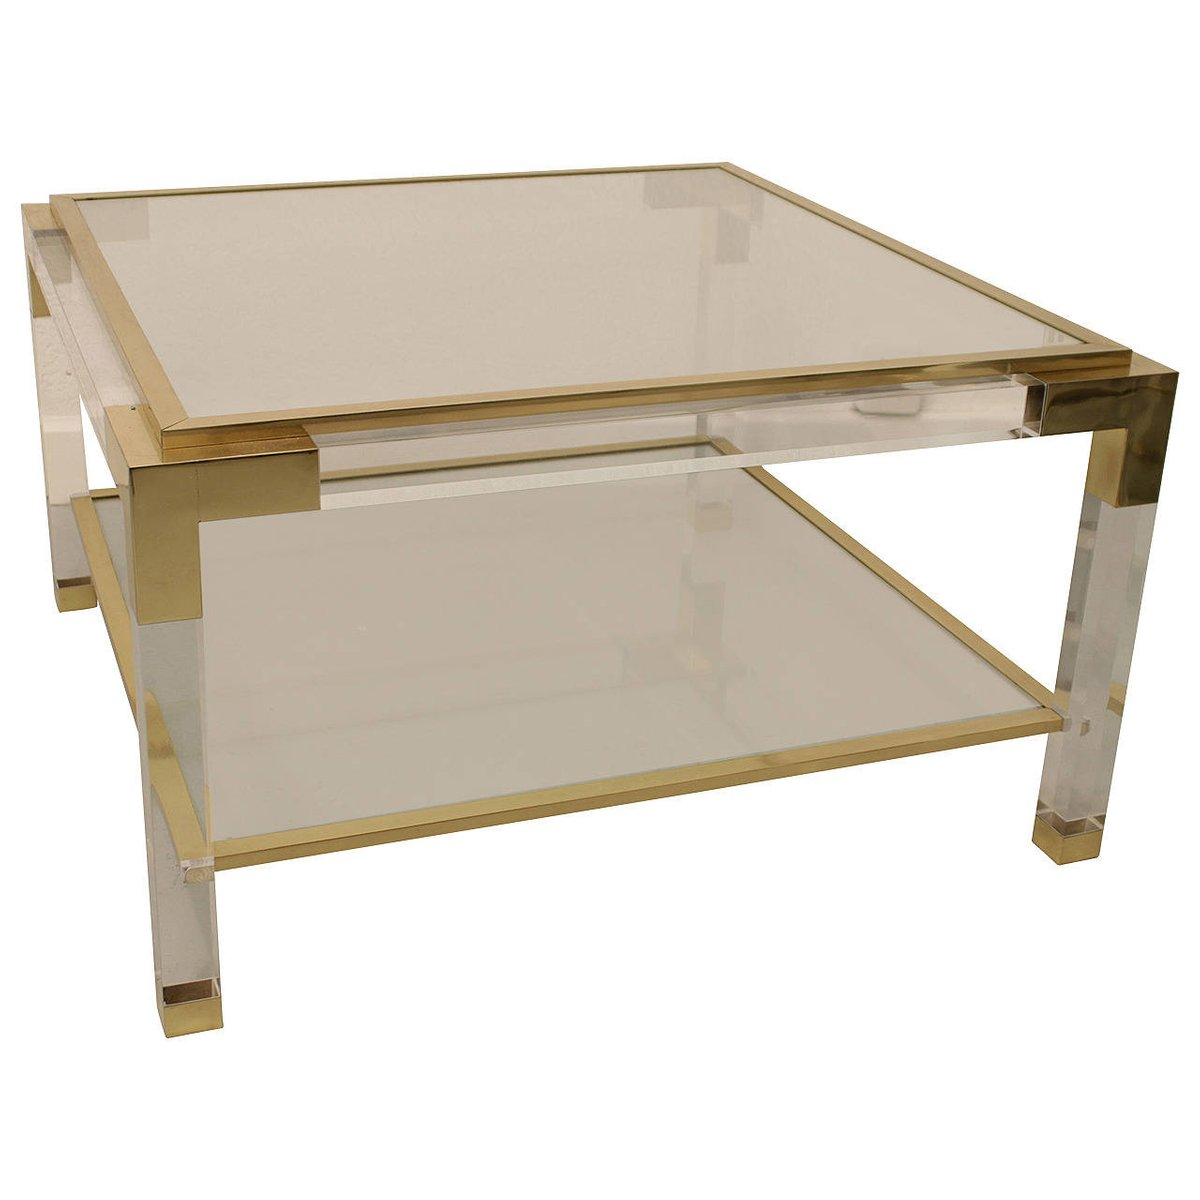 Square Brass Lucite Coffee Table 1975 For Sale At Pamono